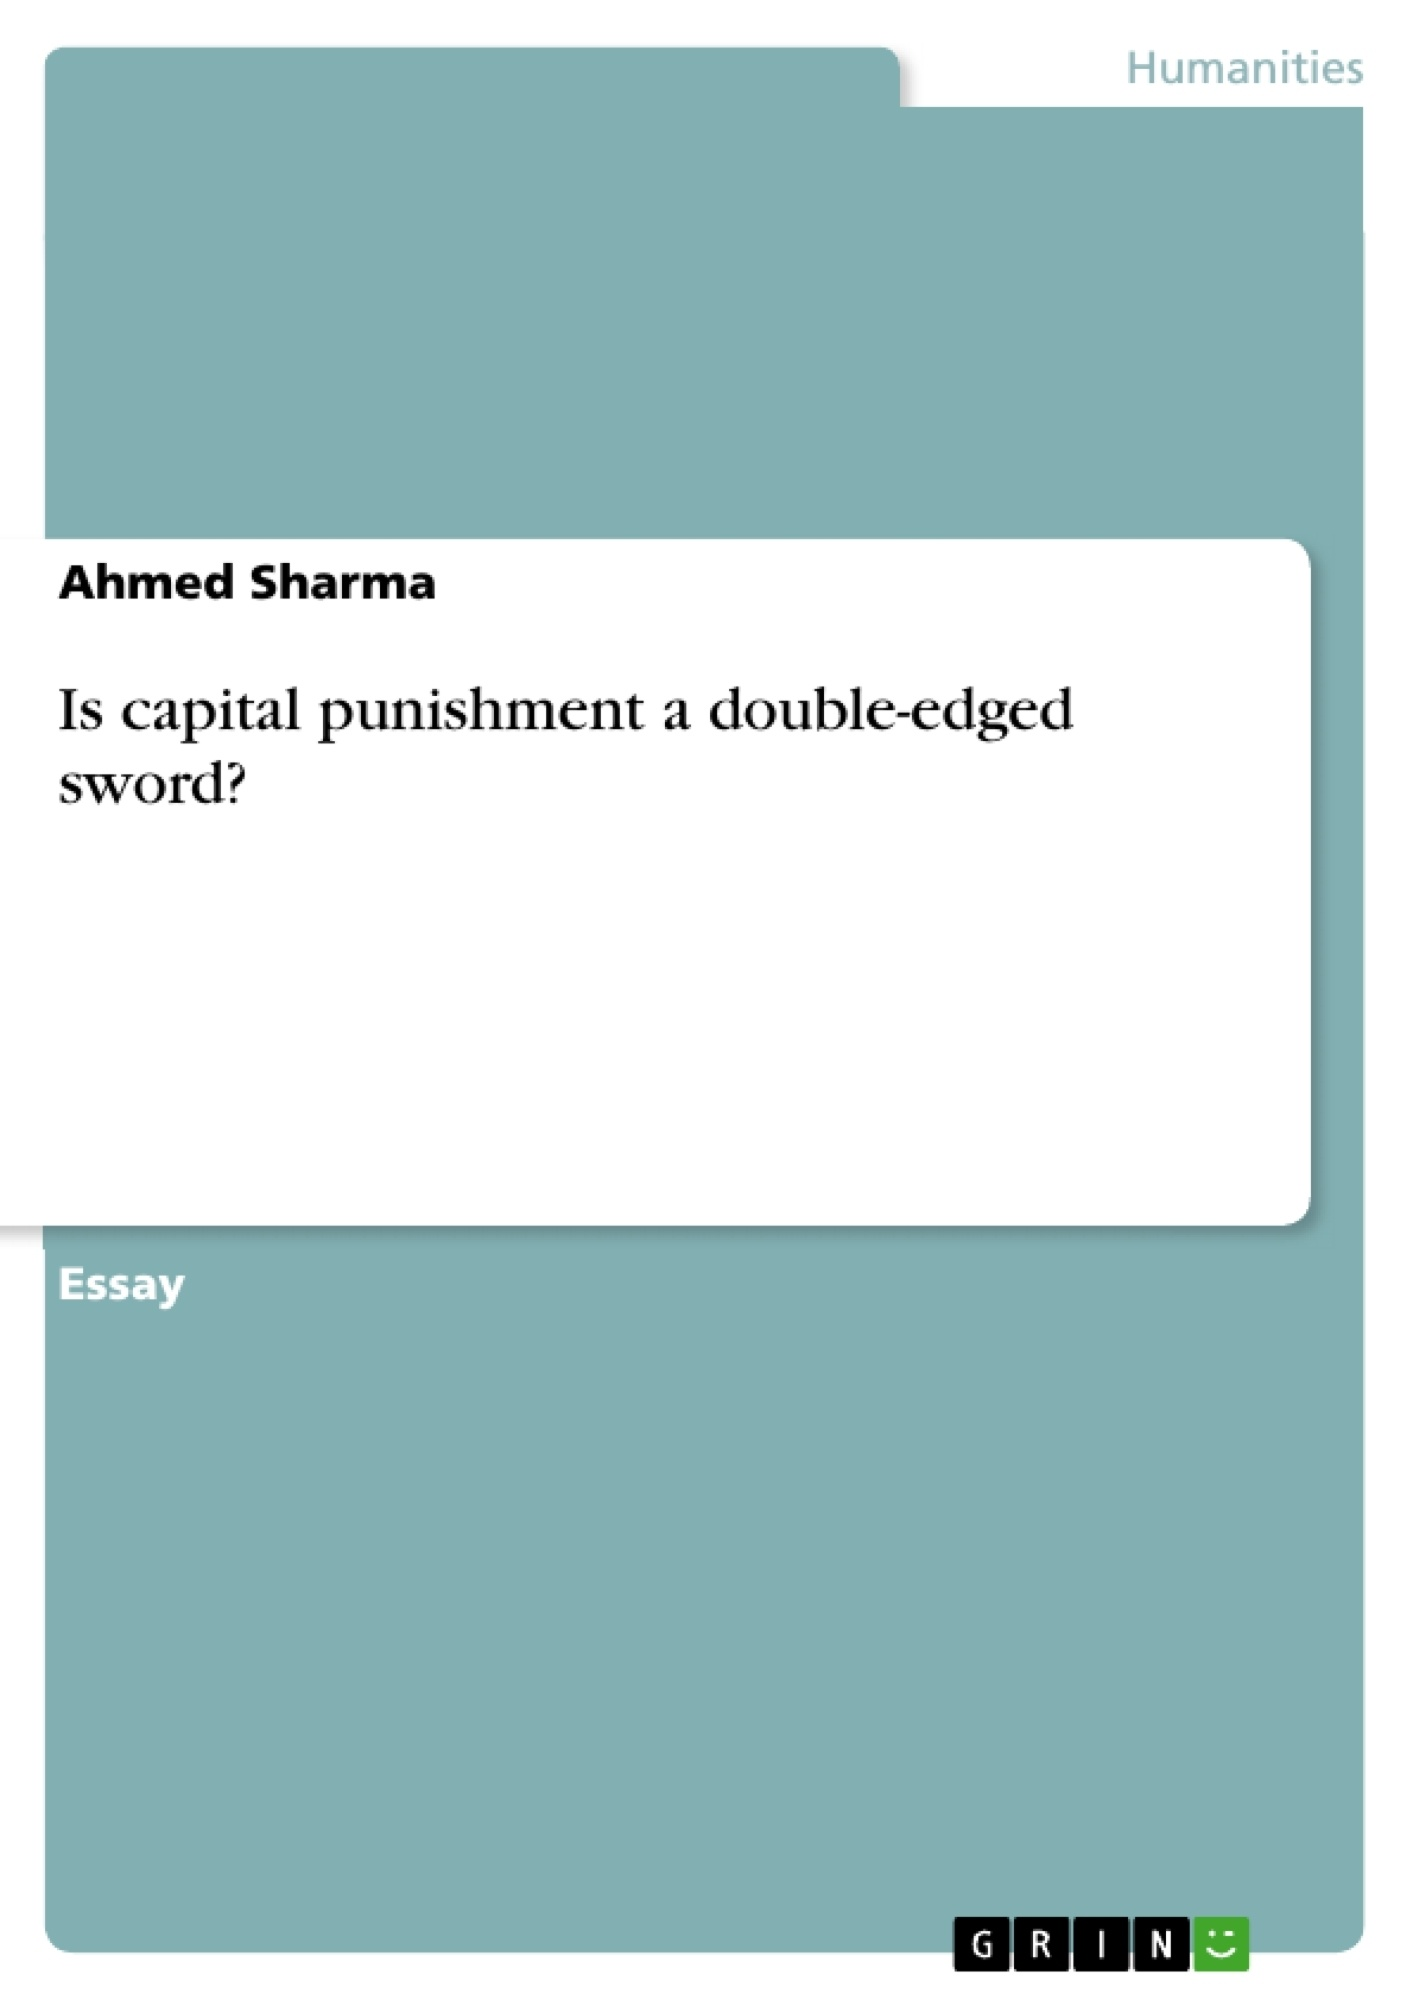 Title: Is capital punishment a double-edged sword?